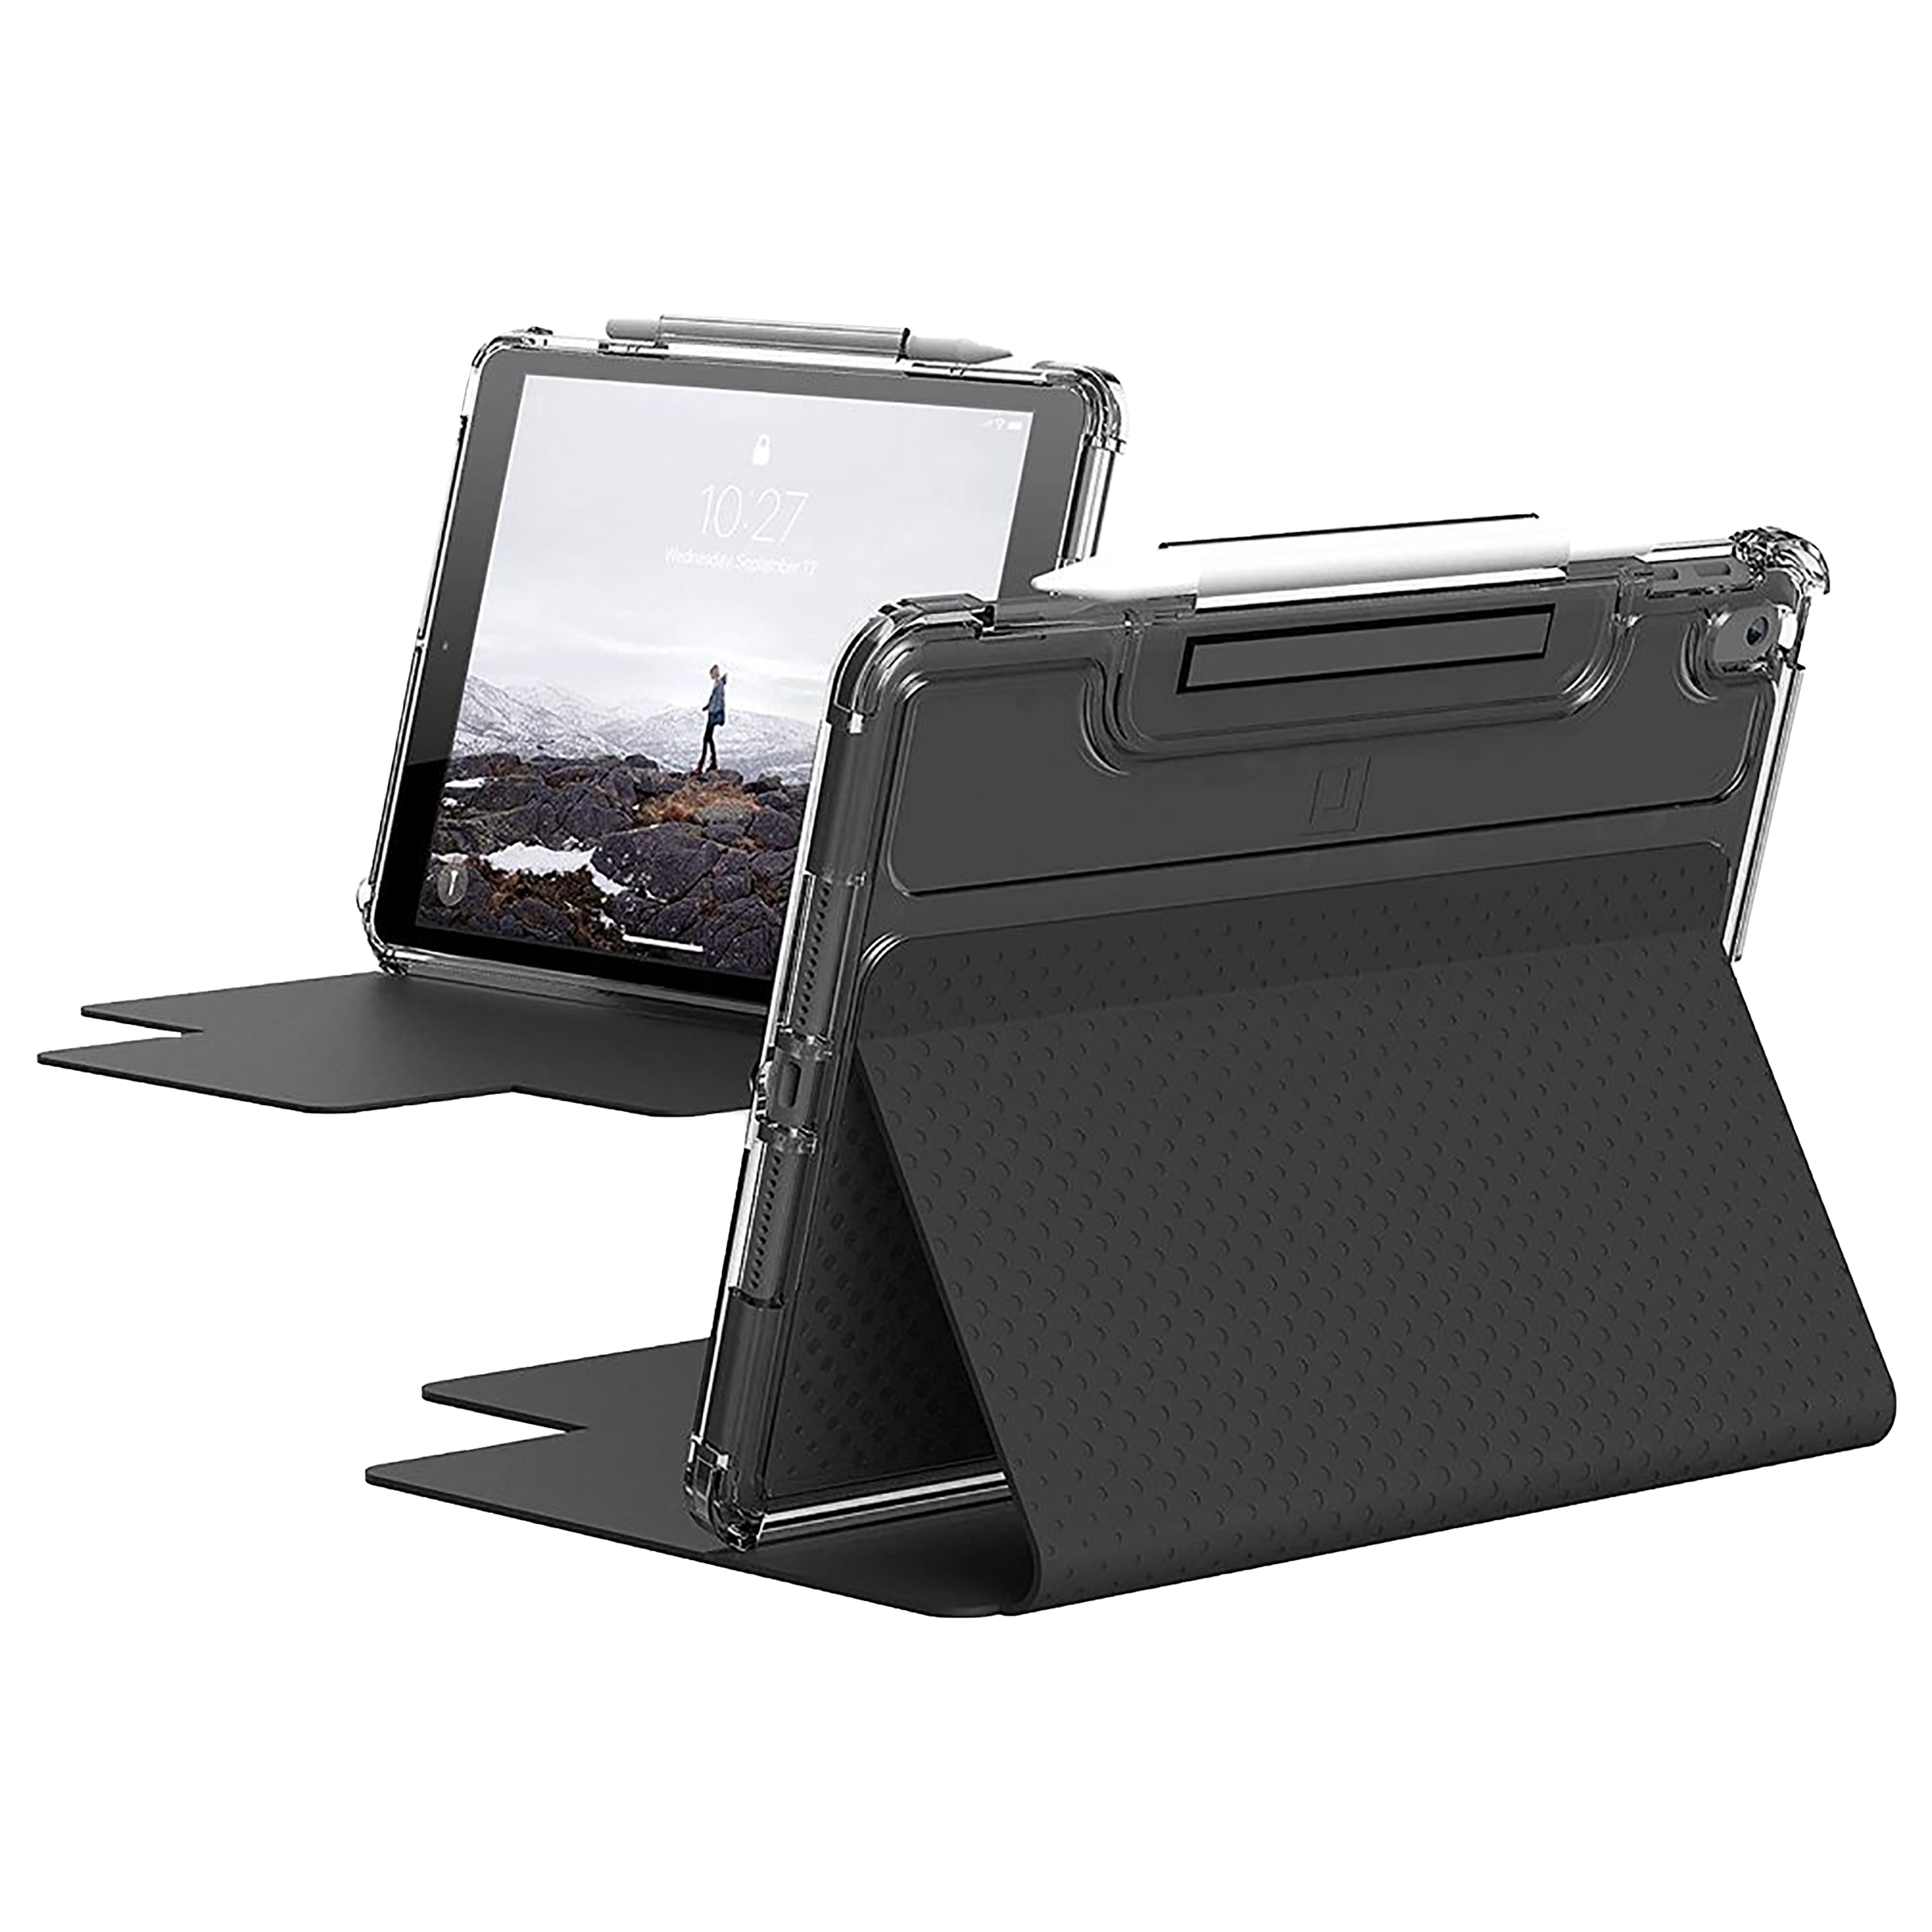 UAG Lucent Polycarbonate Flip Case with Stand For Apple iPad 10.2 Inch (Sophisticated Translucent Protection, UGLU_IPD102_BK_IC, Clear Black)_1